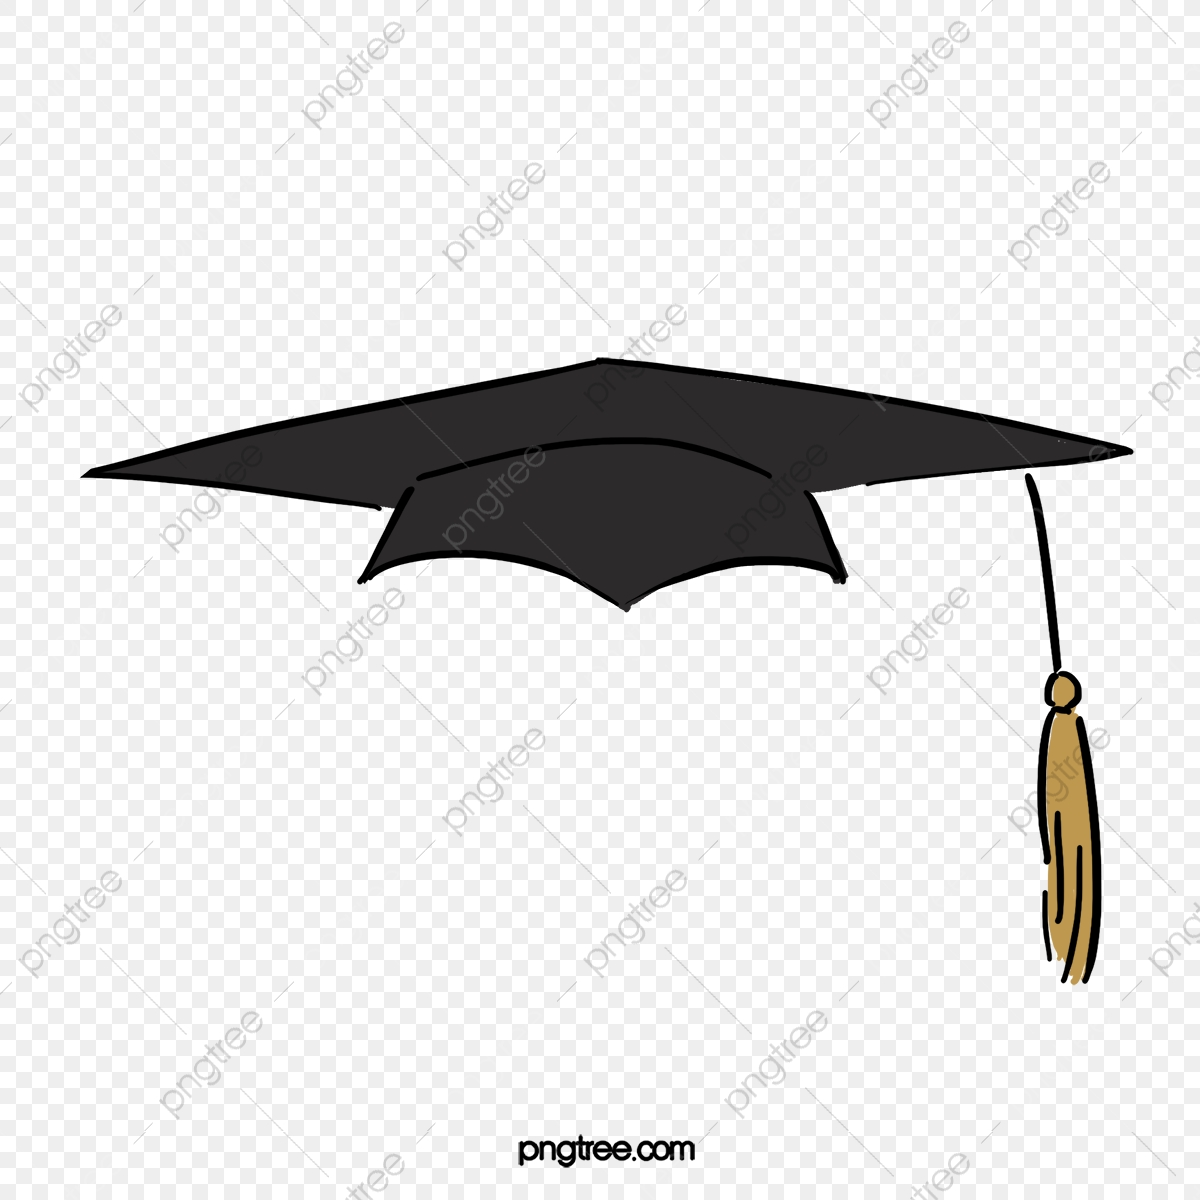 Black Bachelor Cap, Black, Bachelor Cap, Bachelor Degree PNG.